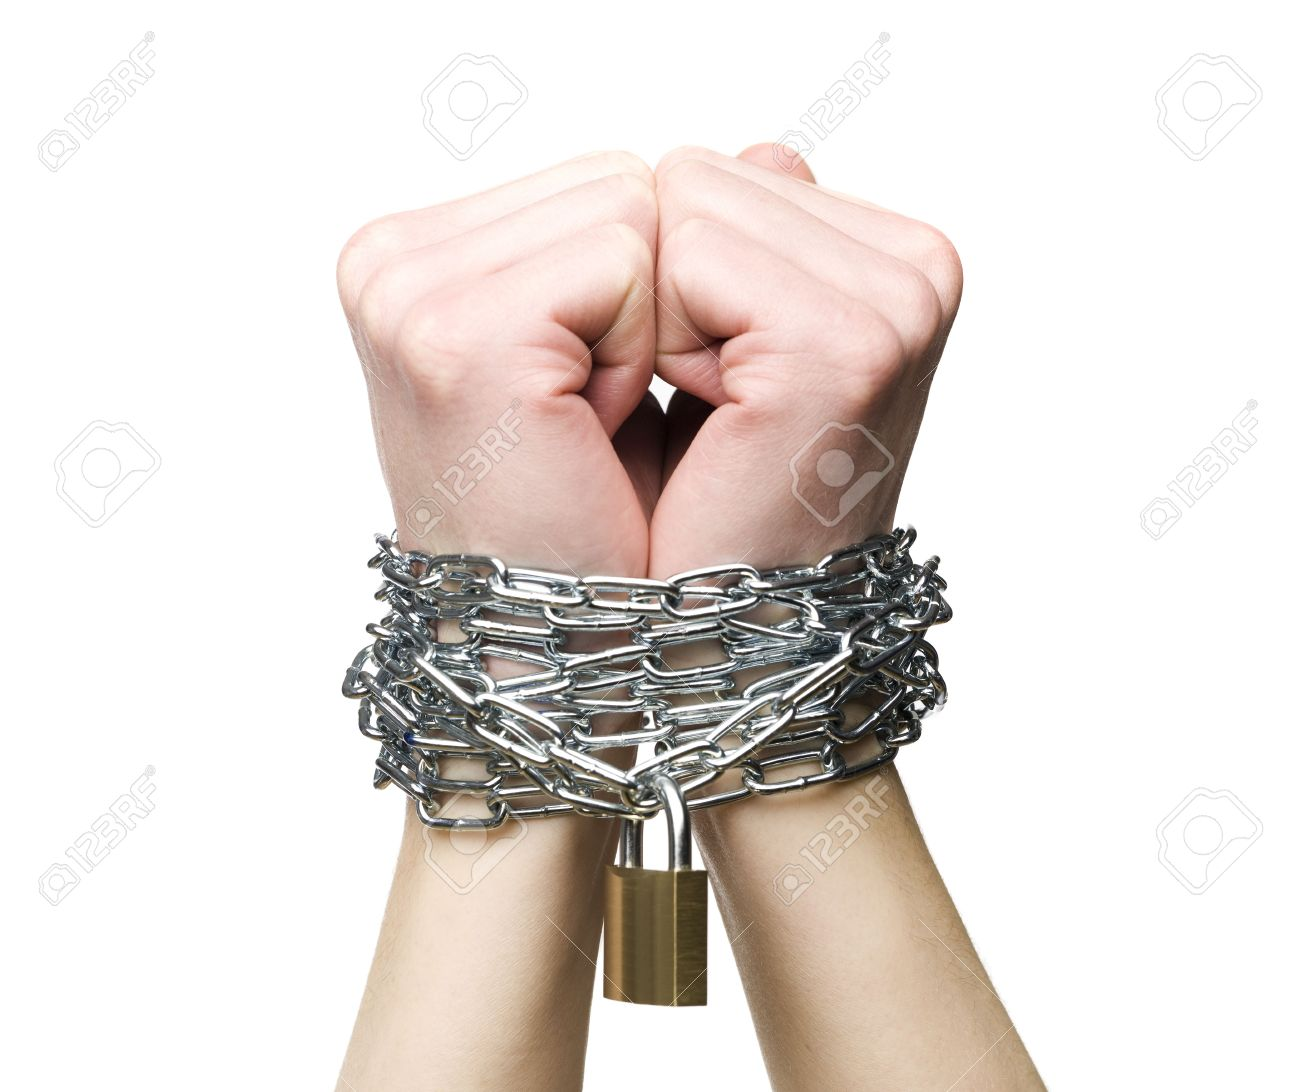 Hands chained together isolated on a white background Stock Photo - 6090932